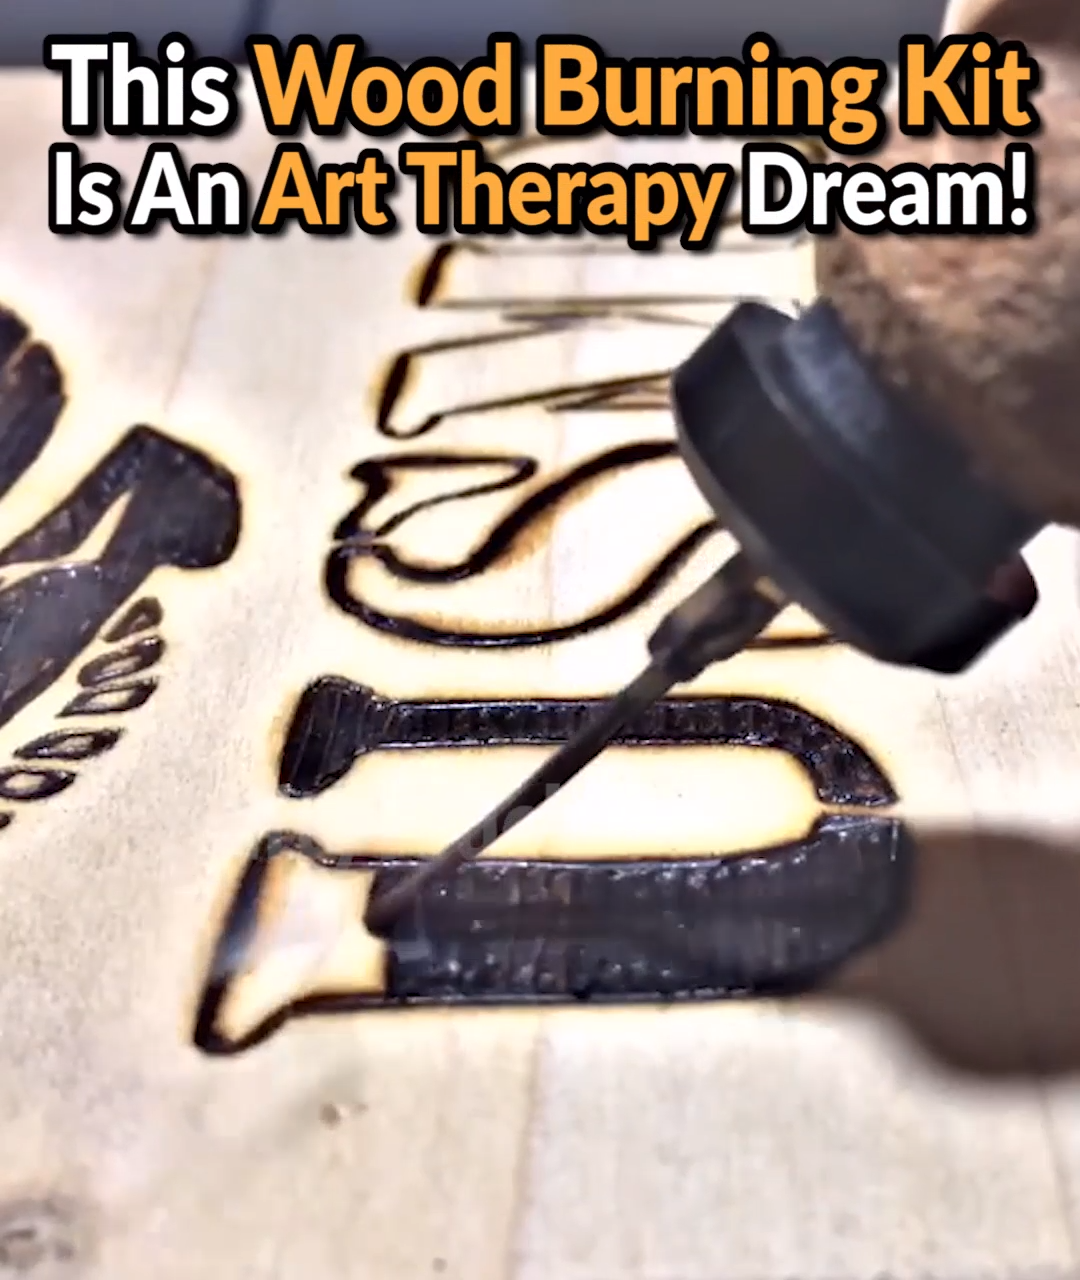 ��Relax With The Art Of Pyrography - 50% OFF